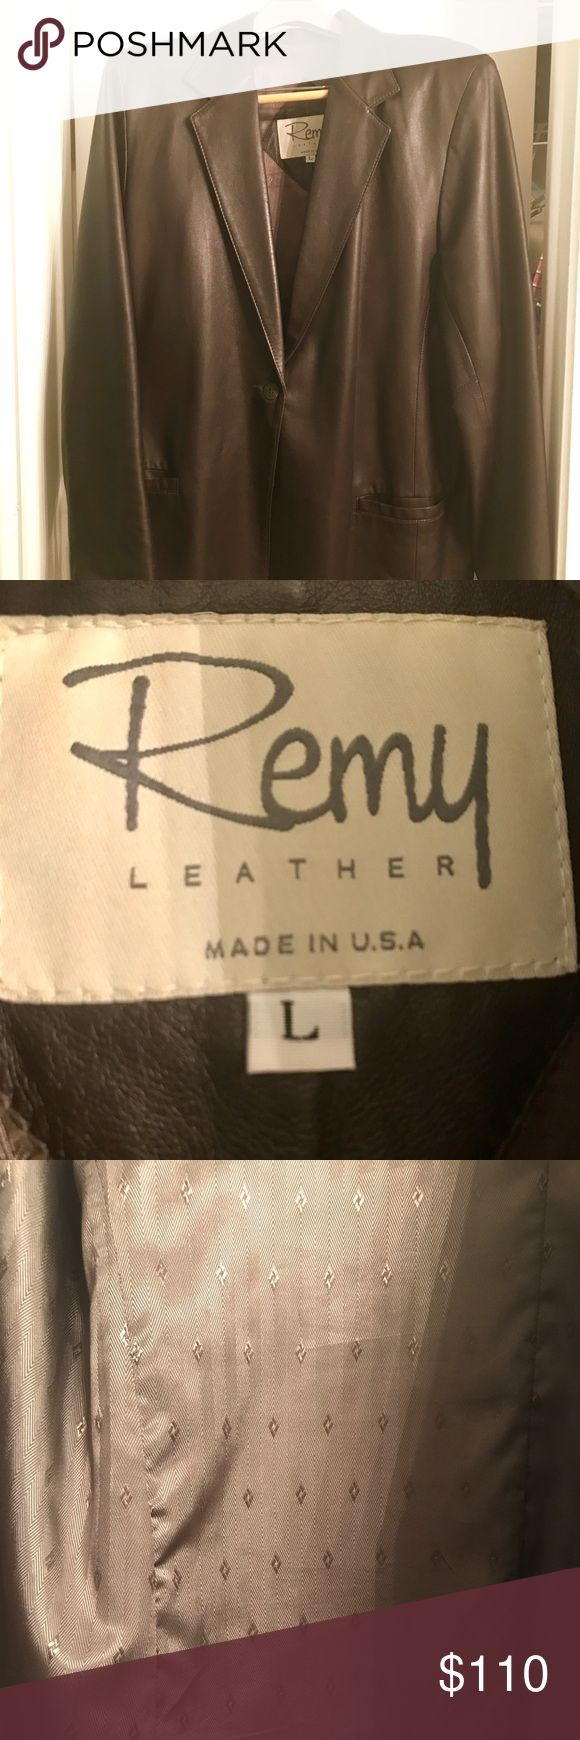 Ladies Remy Leather Brown Jacket This is a beautiful 100% authentic leather jacket, with soft brown leather. It is fully lined. Size L. Can be worn with just about anything. Only worn once (wrong size and it was a gift). It's a must have for your wardrobe. Remy Leather Jackets & Coats Blazers